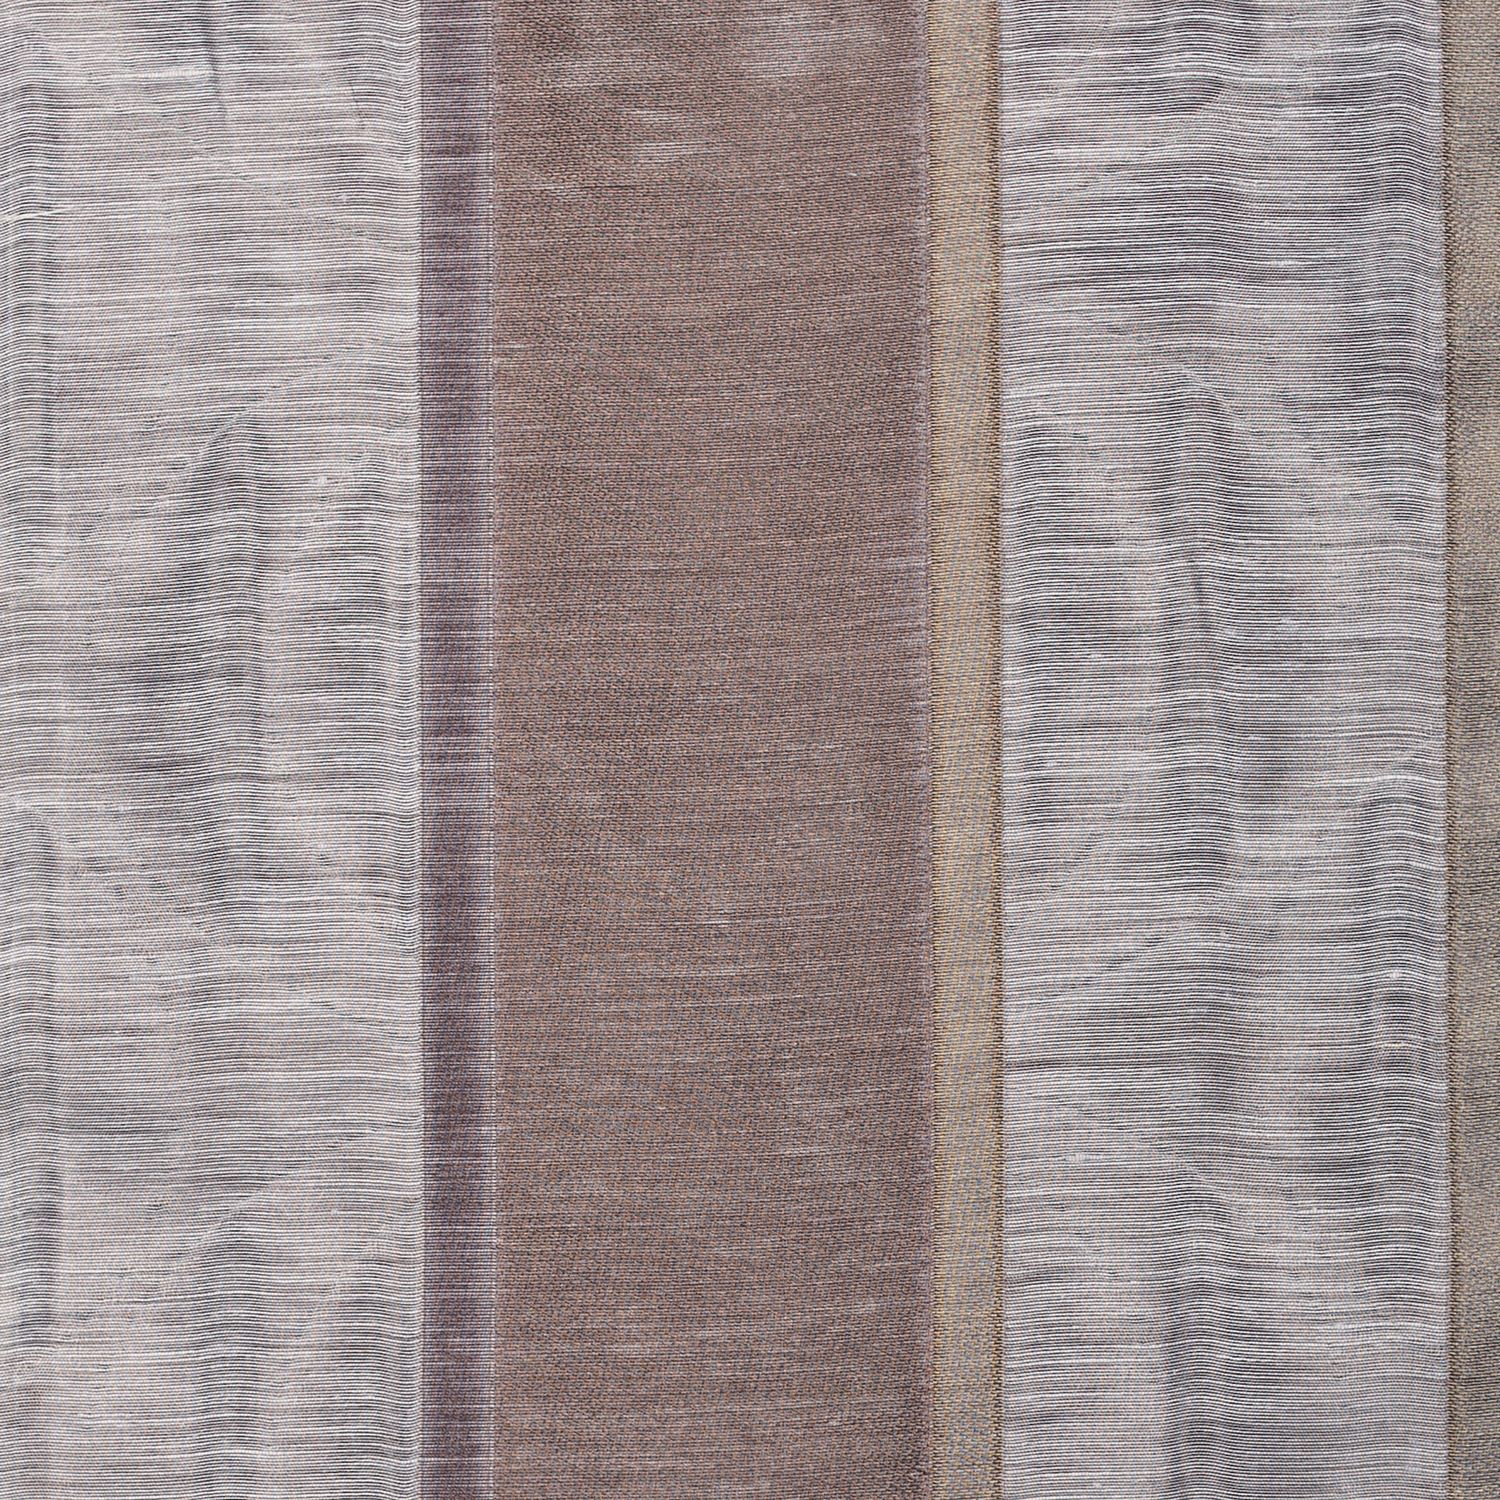 Softline Home Fashions Drapery Colma Stripe Panel - Pebble